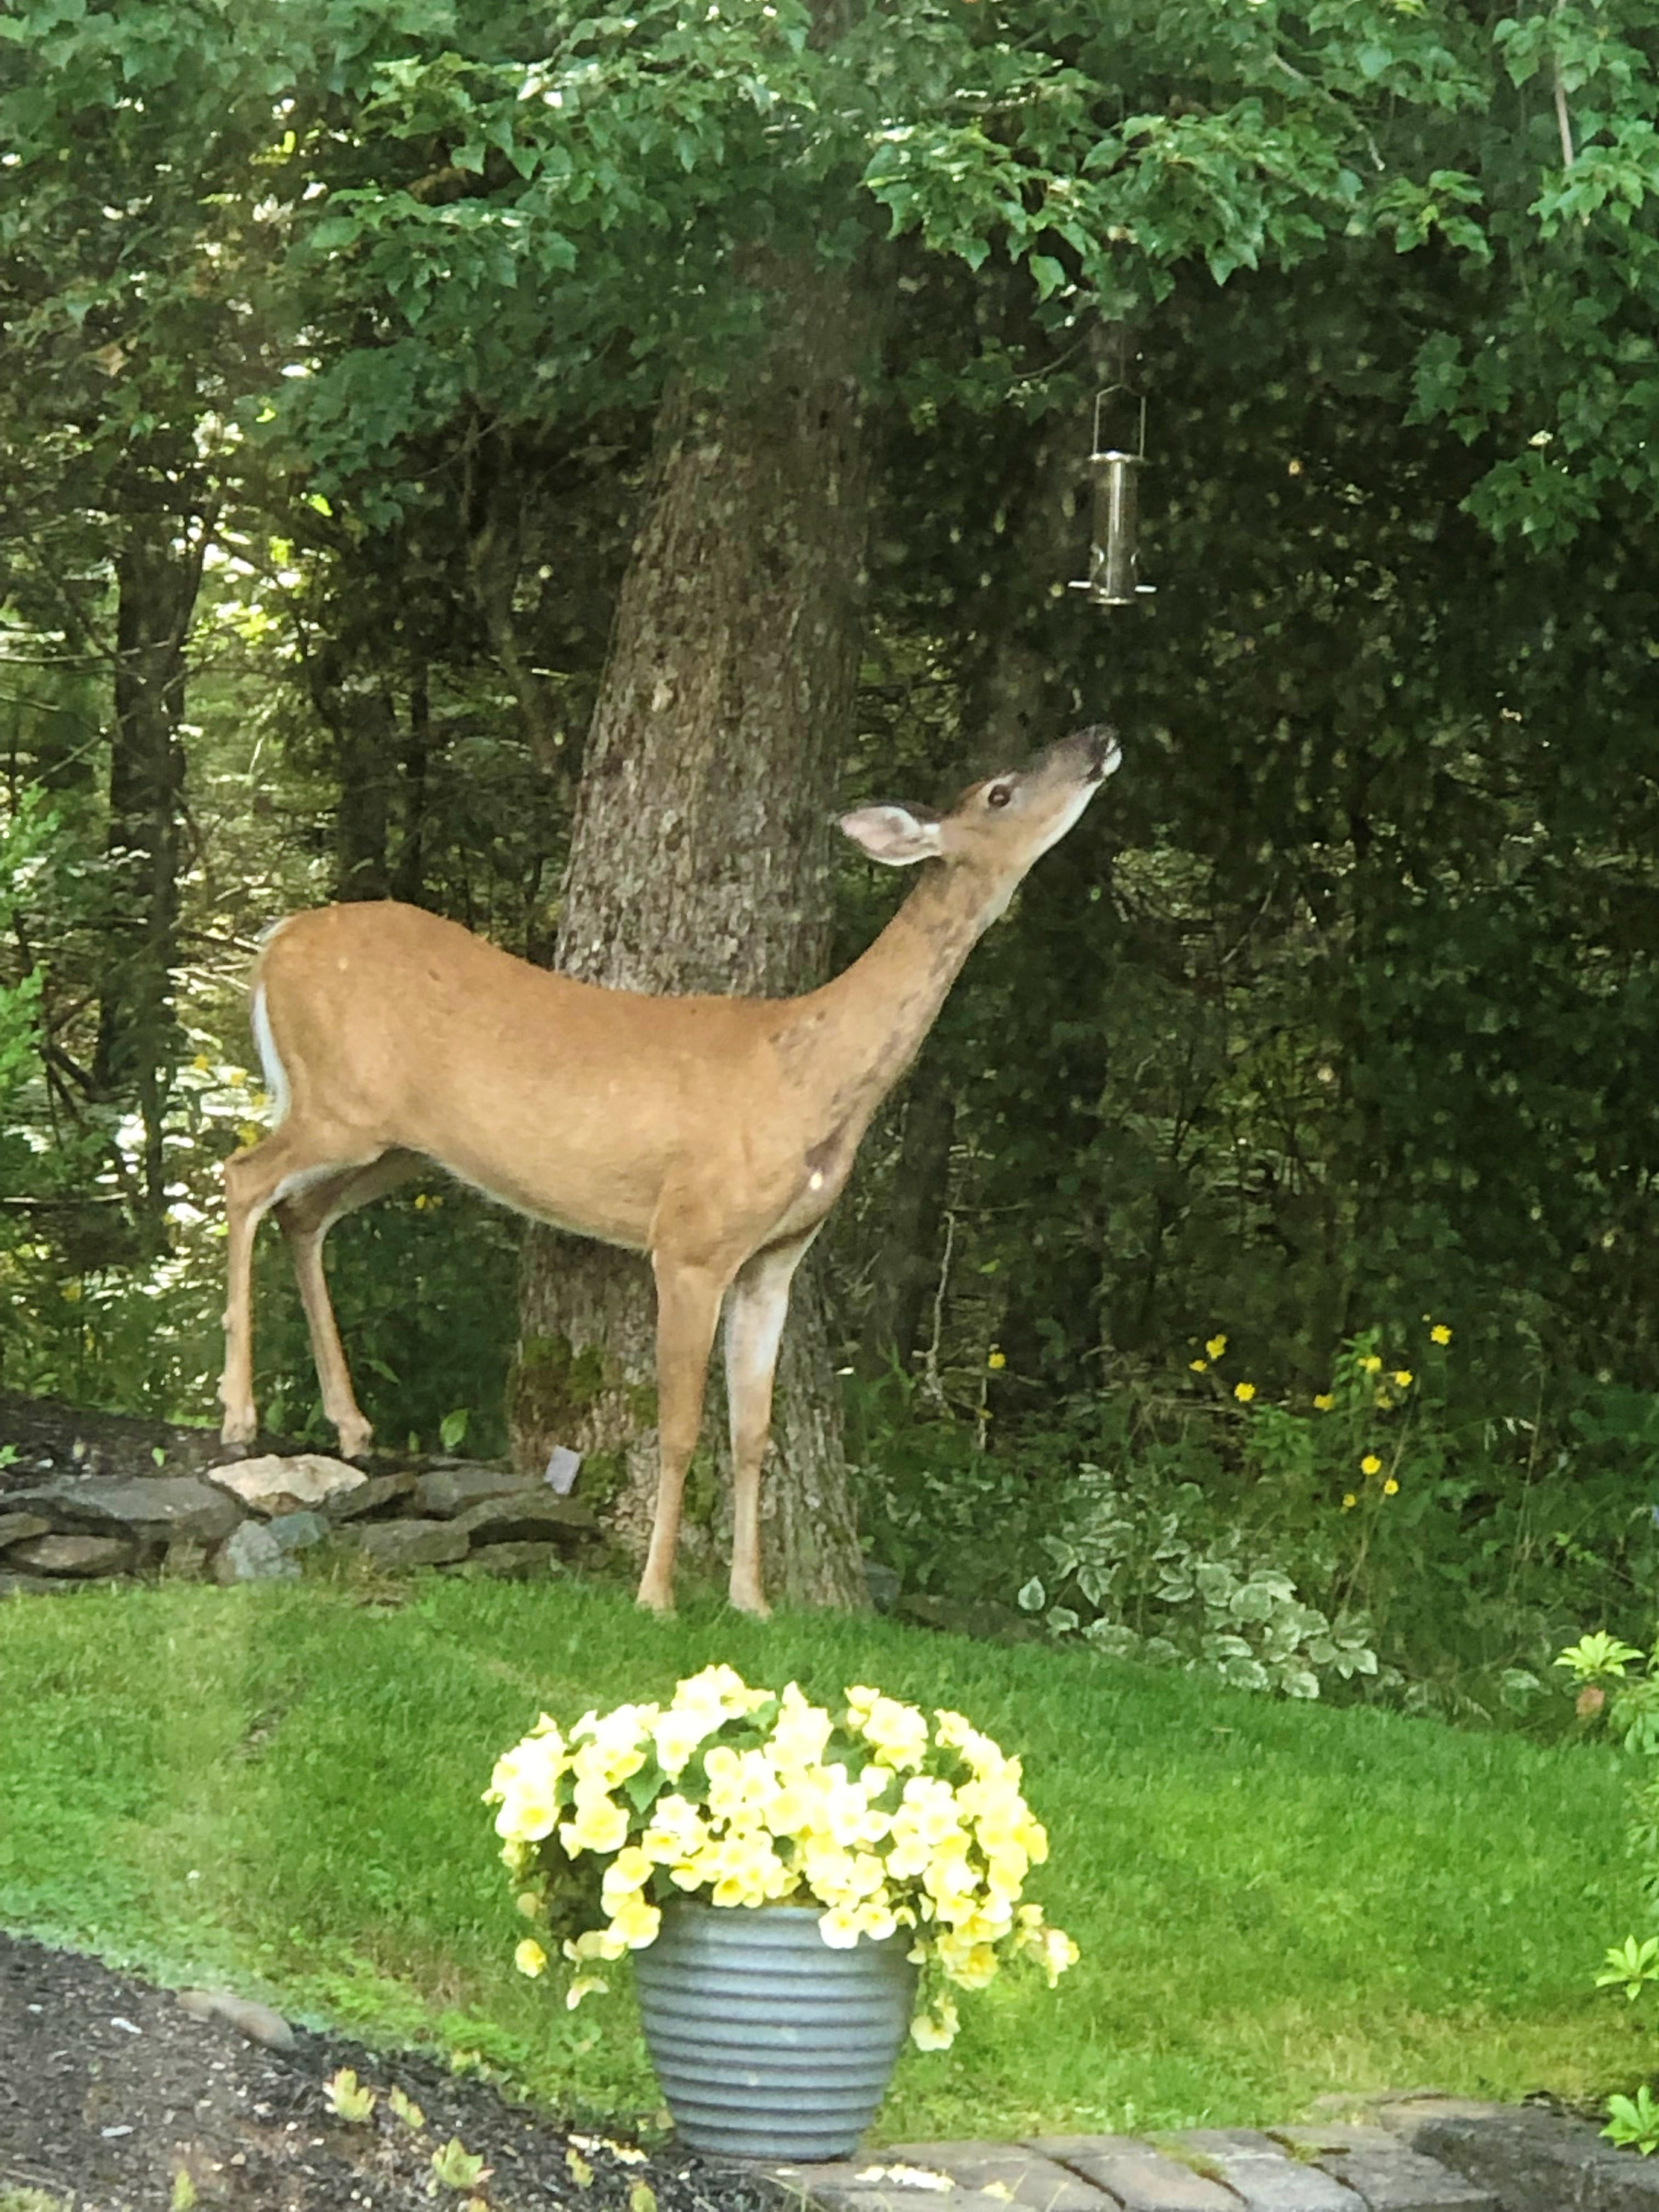 Bob St. Laurent snapped this photo of a visit from 'Bamby' in his Chester, N.S. backyard. The deer was attempting to raid his property's bird feeder. Normally, squirrels do, but Bob said it's the first time he has seen a deer make an attempt. Fortunately, for him, Bamby was unsuccessful.